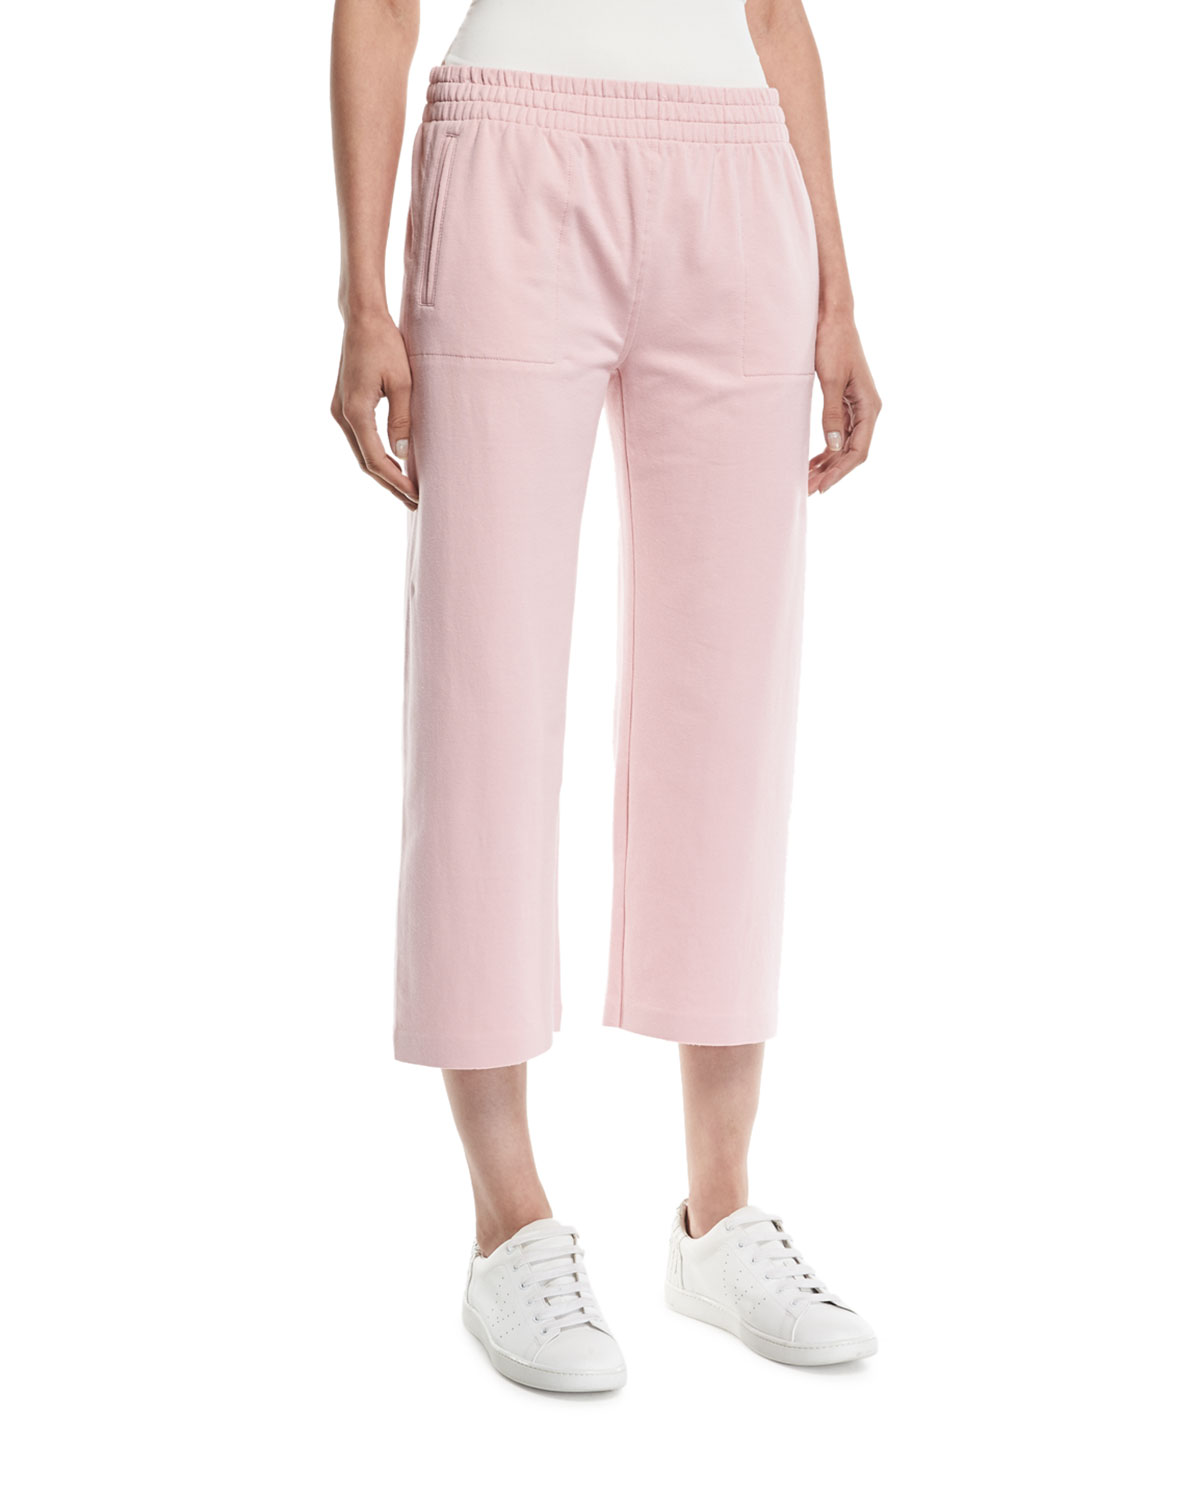 Cropped Boyfriend Sweatpants